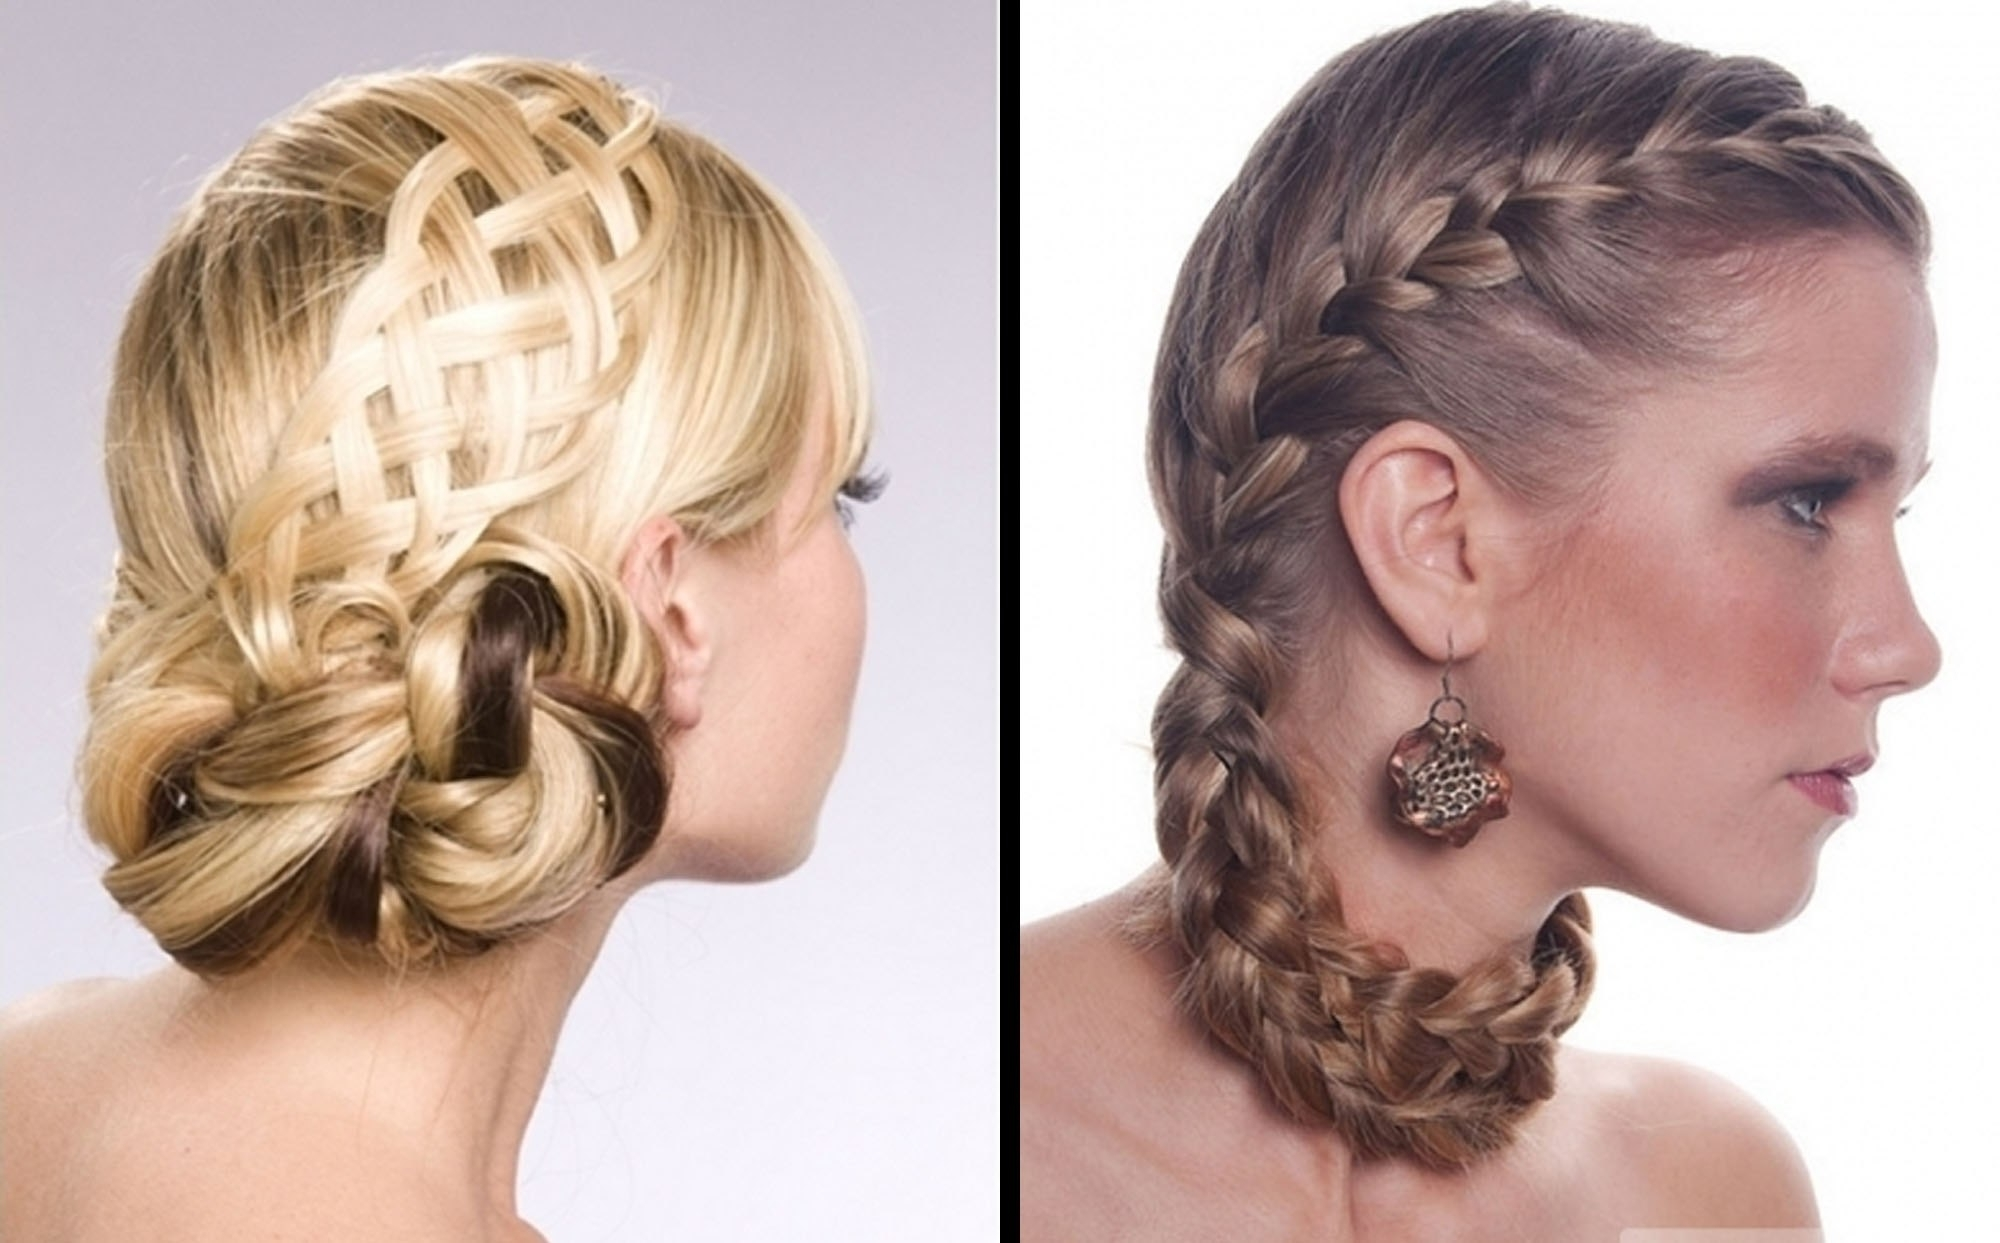 Hairstyles Prom For Short Hair Easy | Medium Hair Styles Ideas – 8364 In Cute And Easy Updo Hairstyles For Short Hair (View 15 of 15)